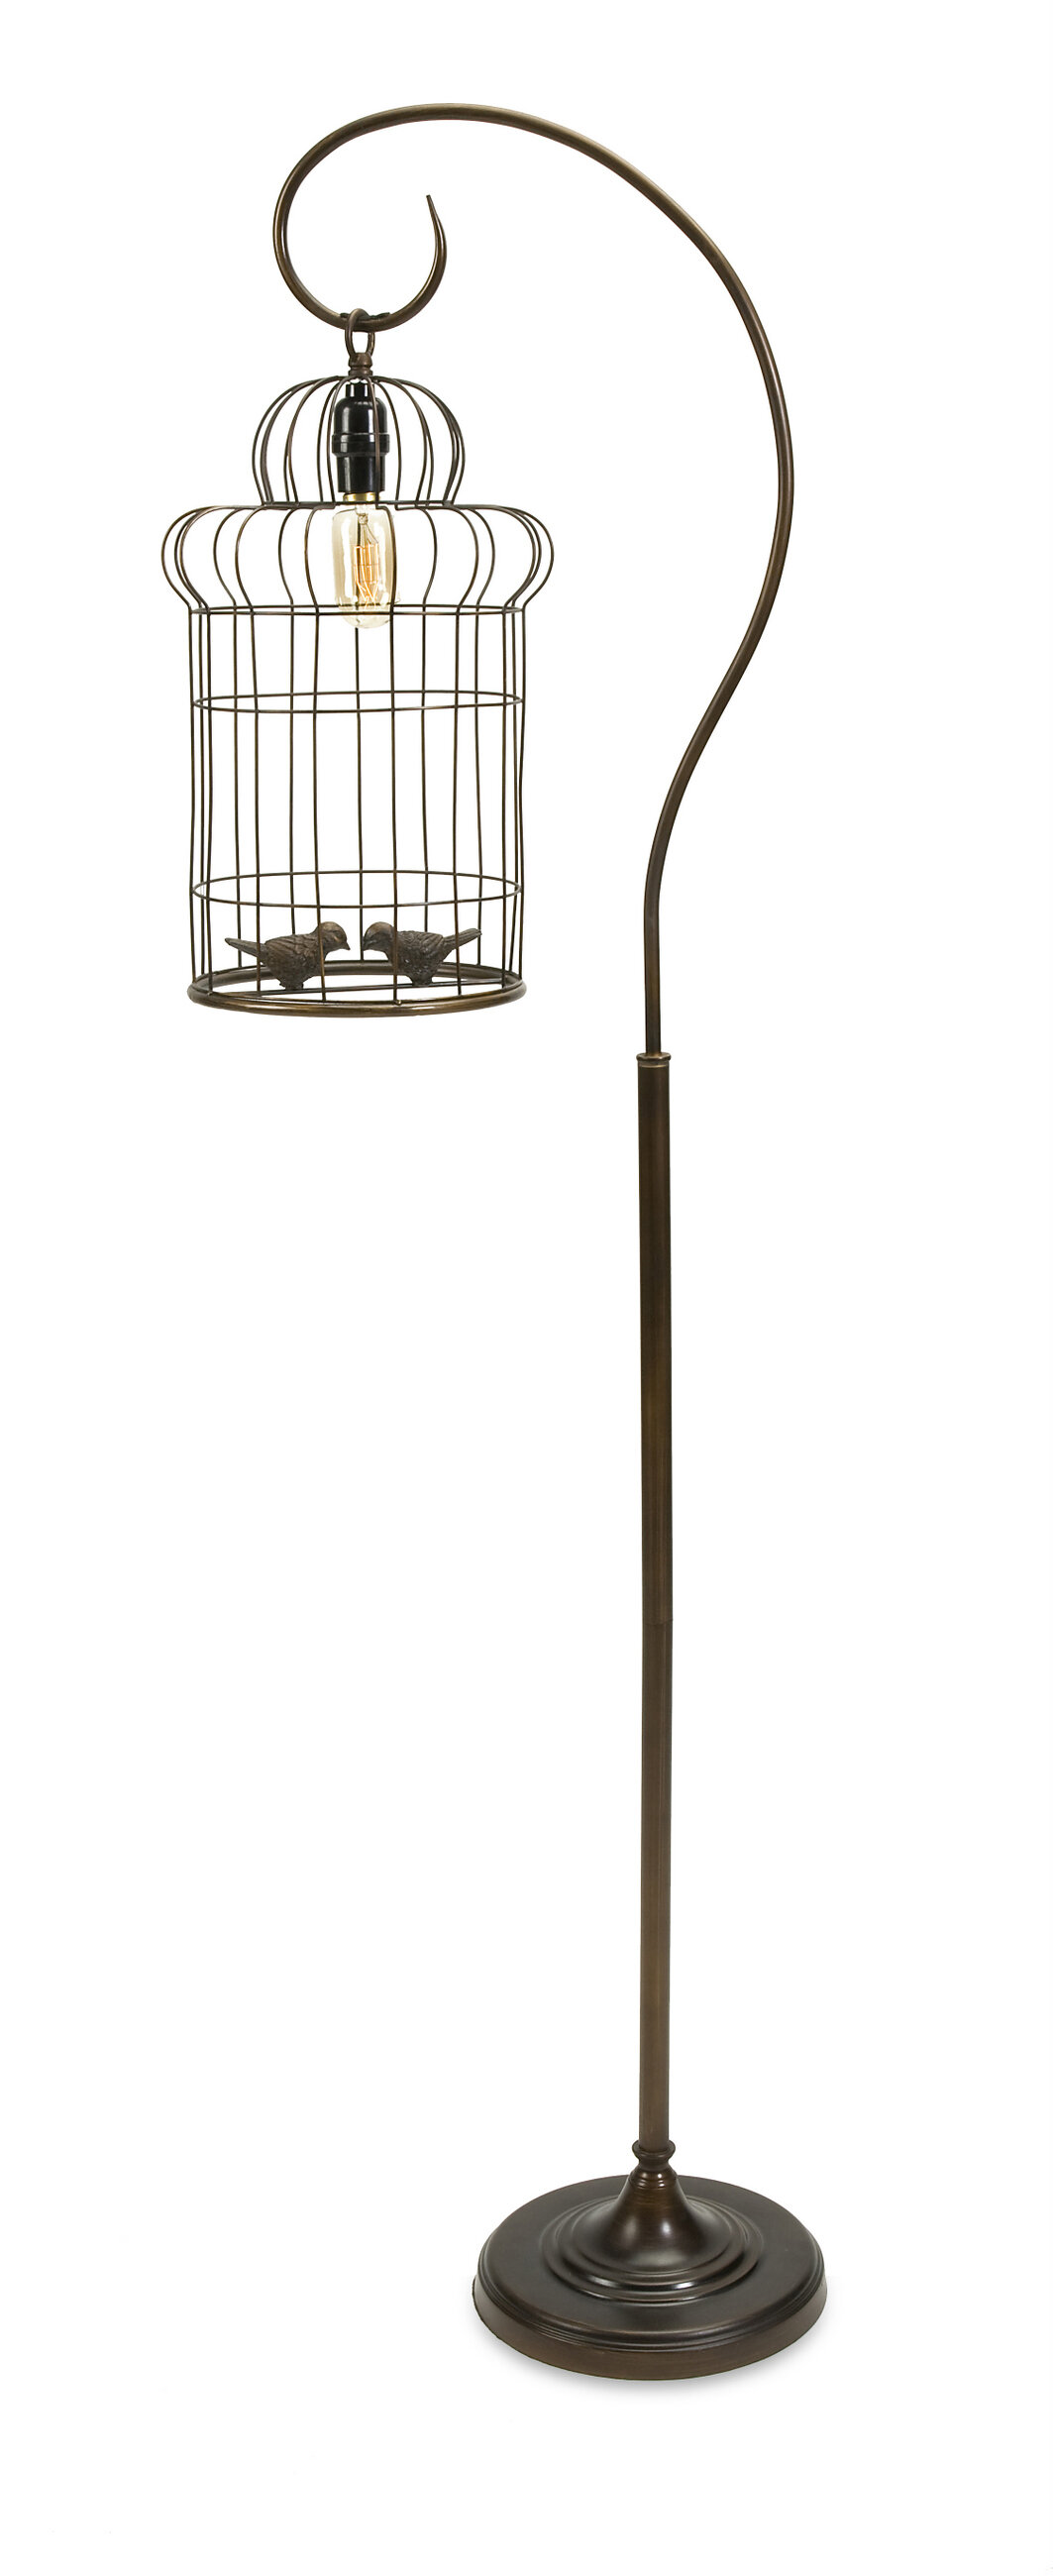 gold tripod set tall birdcage small carina fancy lights for silver bird ideas lamps table bright tree floor living and good uk room branch crane lamp base natural